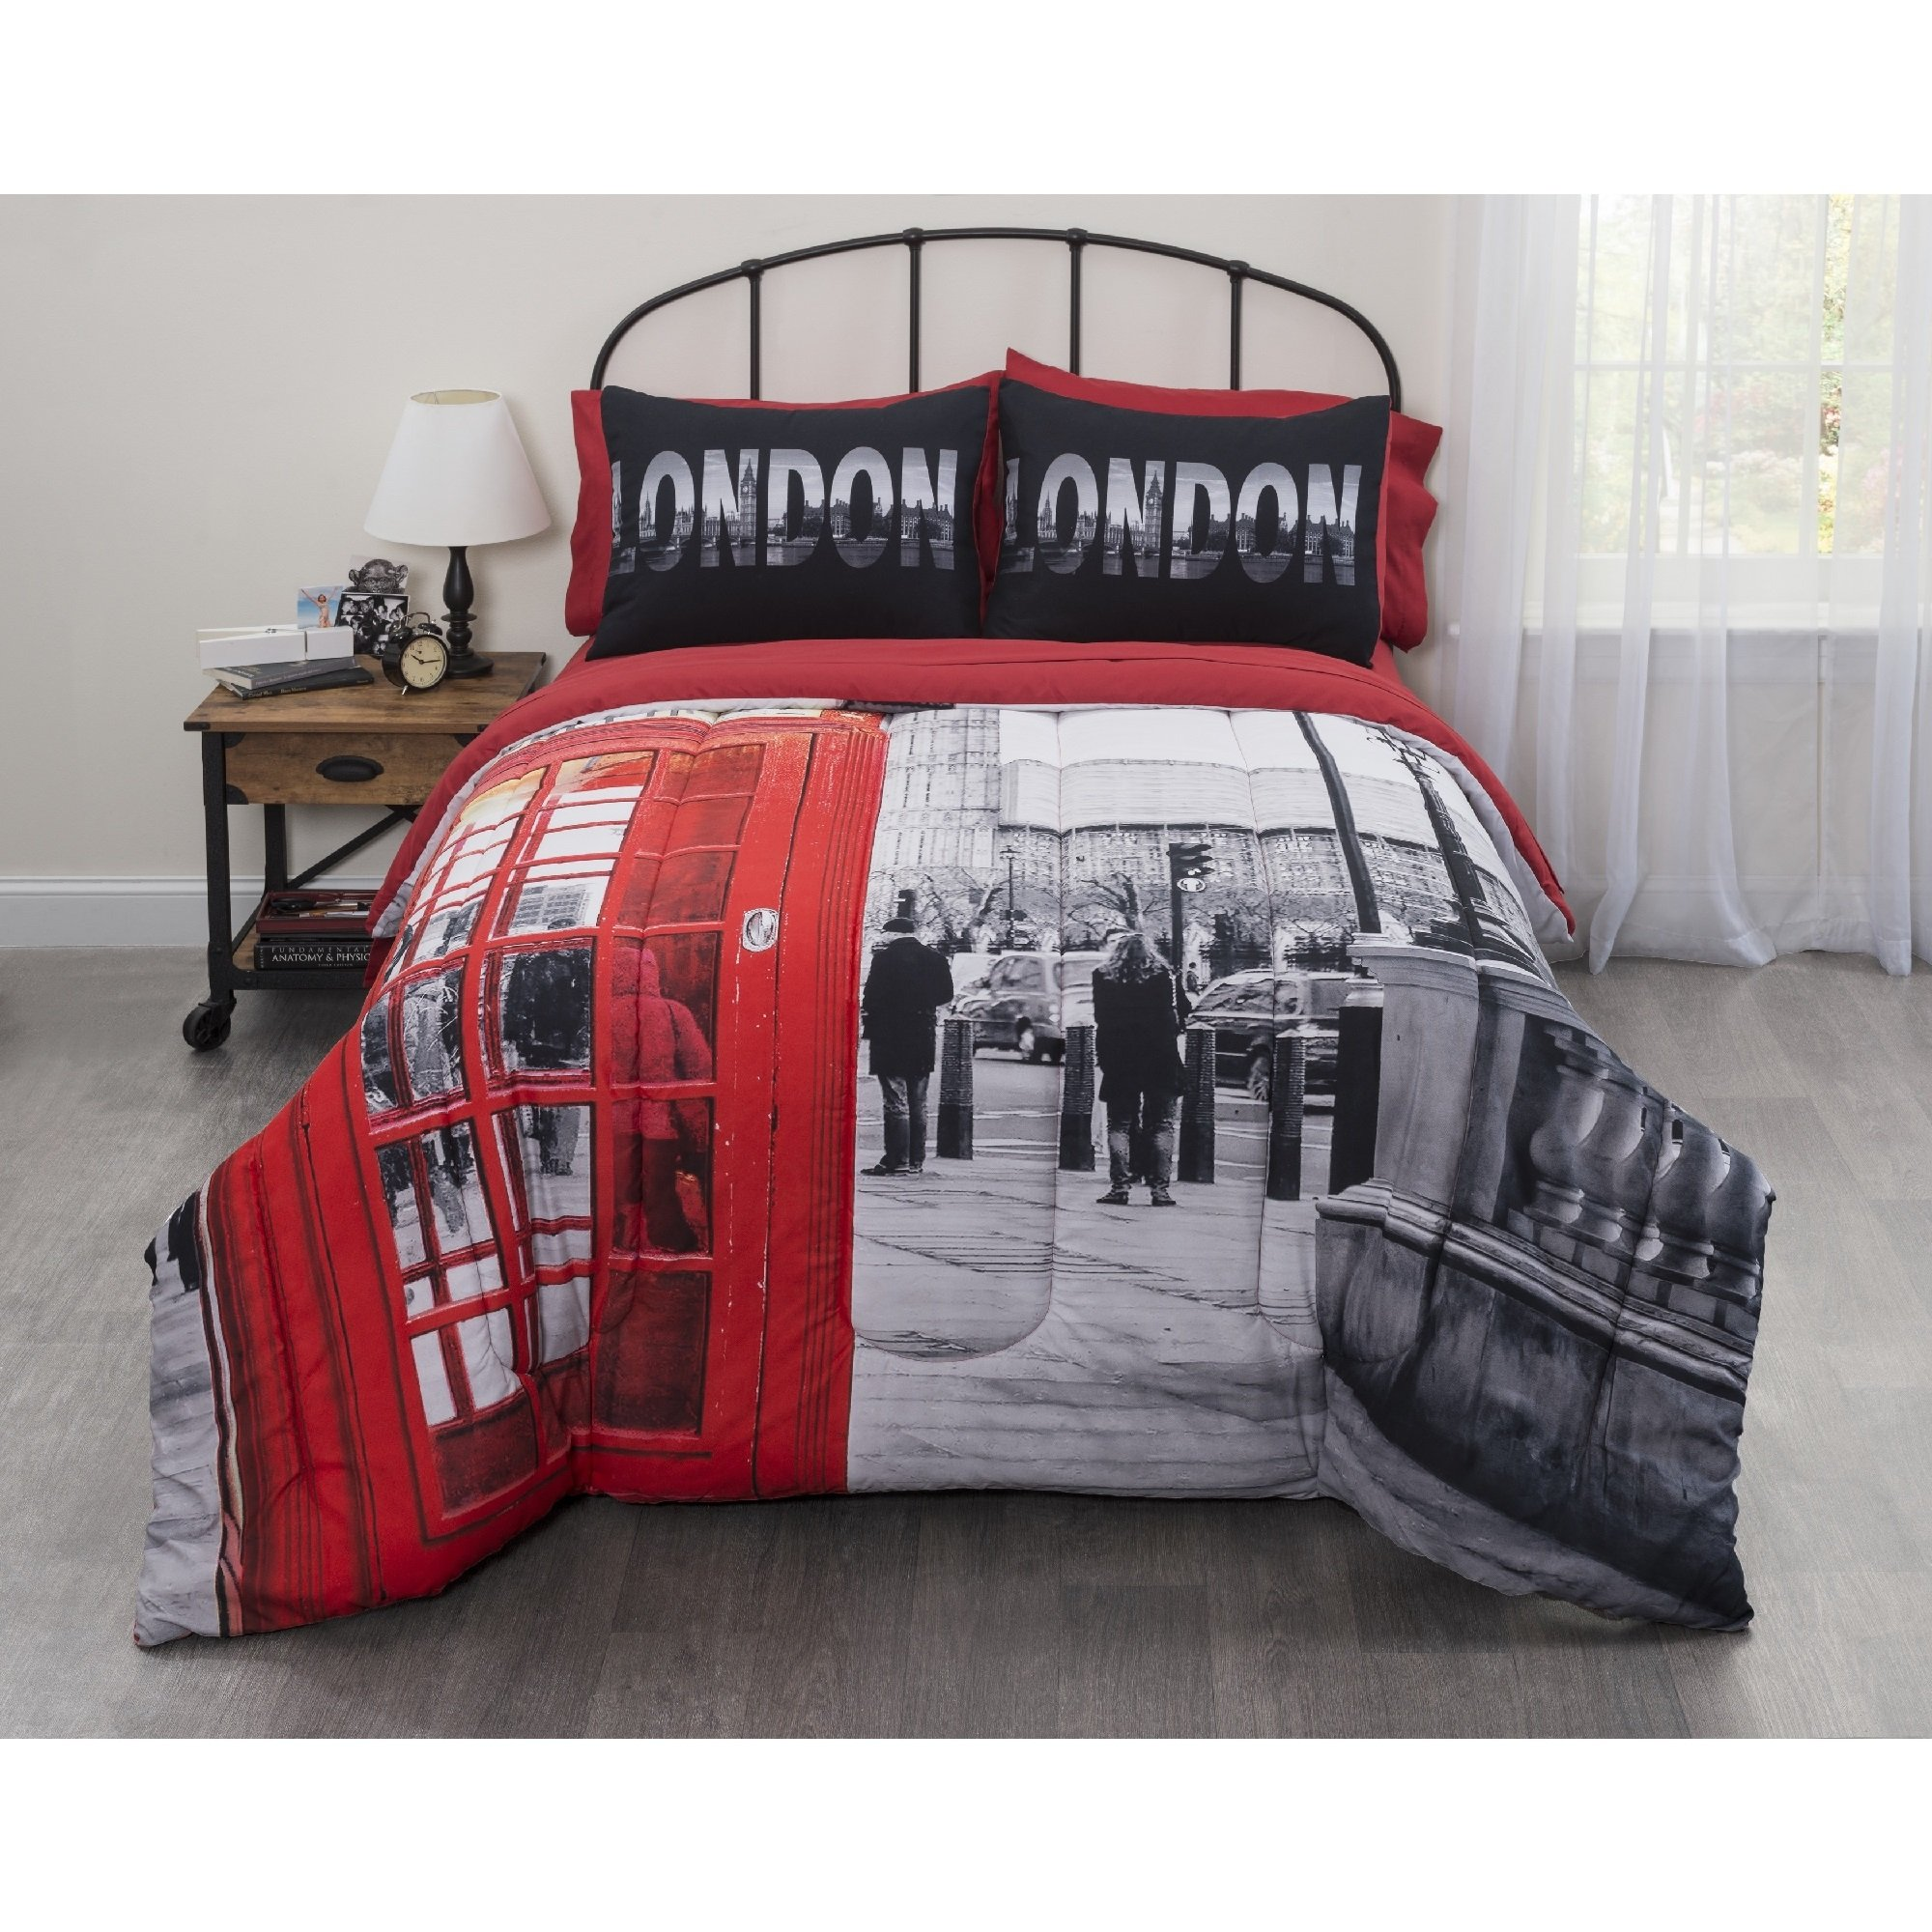 5 Piece Graphic Big Ben Photobooth London Bed In a Bag Design Sheet Set Twin XL Size, Printed Painting European Canvas Bedding, Bold Vintage British Country Spot Theme, Rustic Luxury Motif, Red, Grey